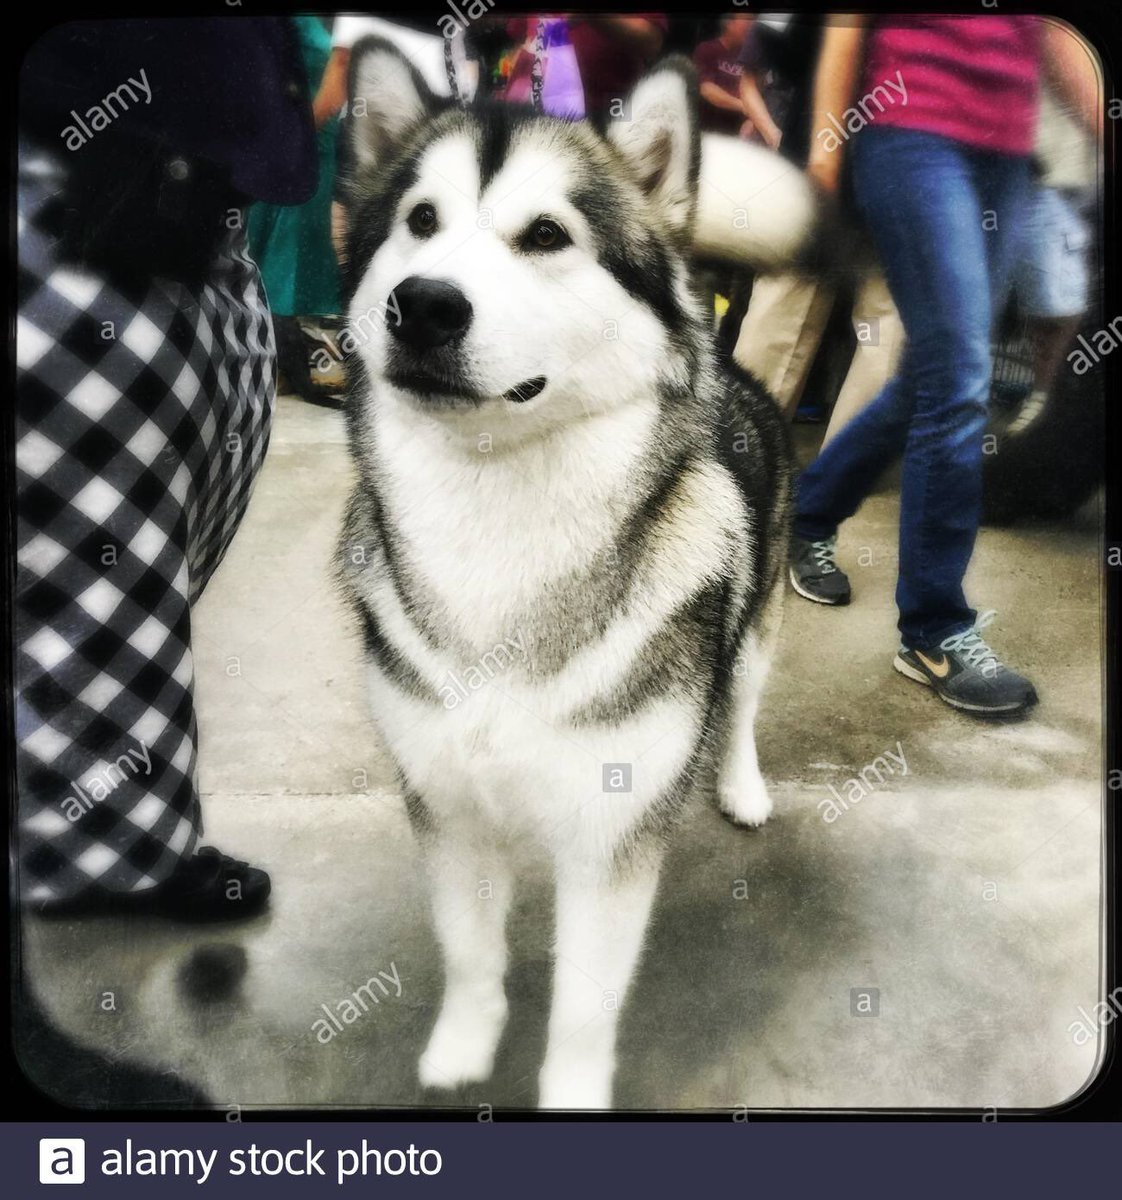 My photo's just been accepted by @Stockimo & it's now for sale on @Alamy #photography #excited #dog #malamute #dogshow #canine